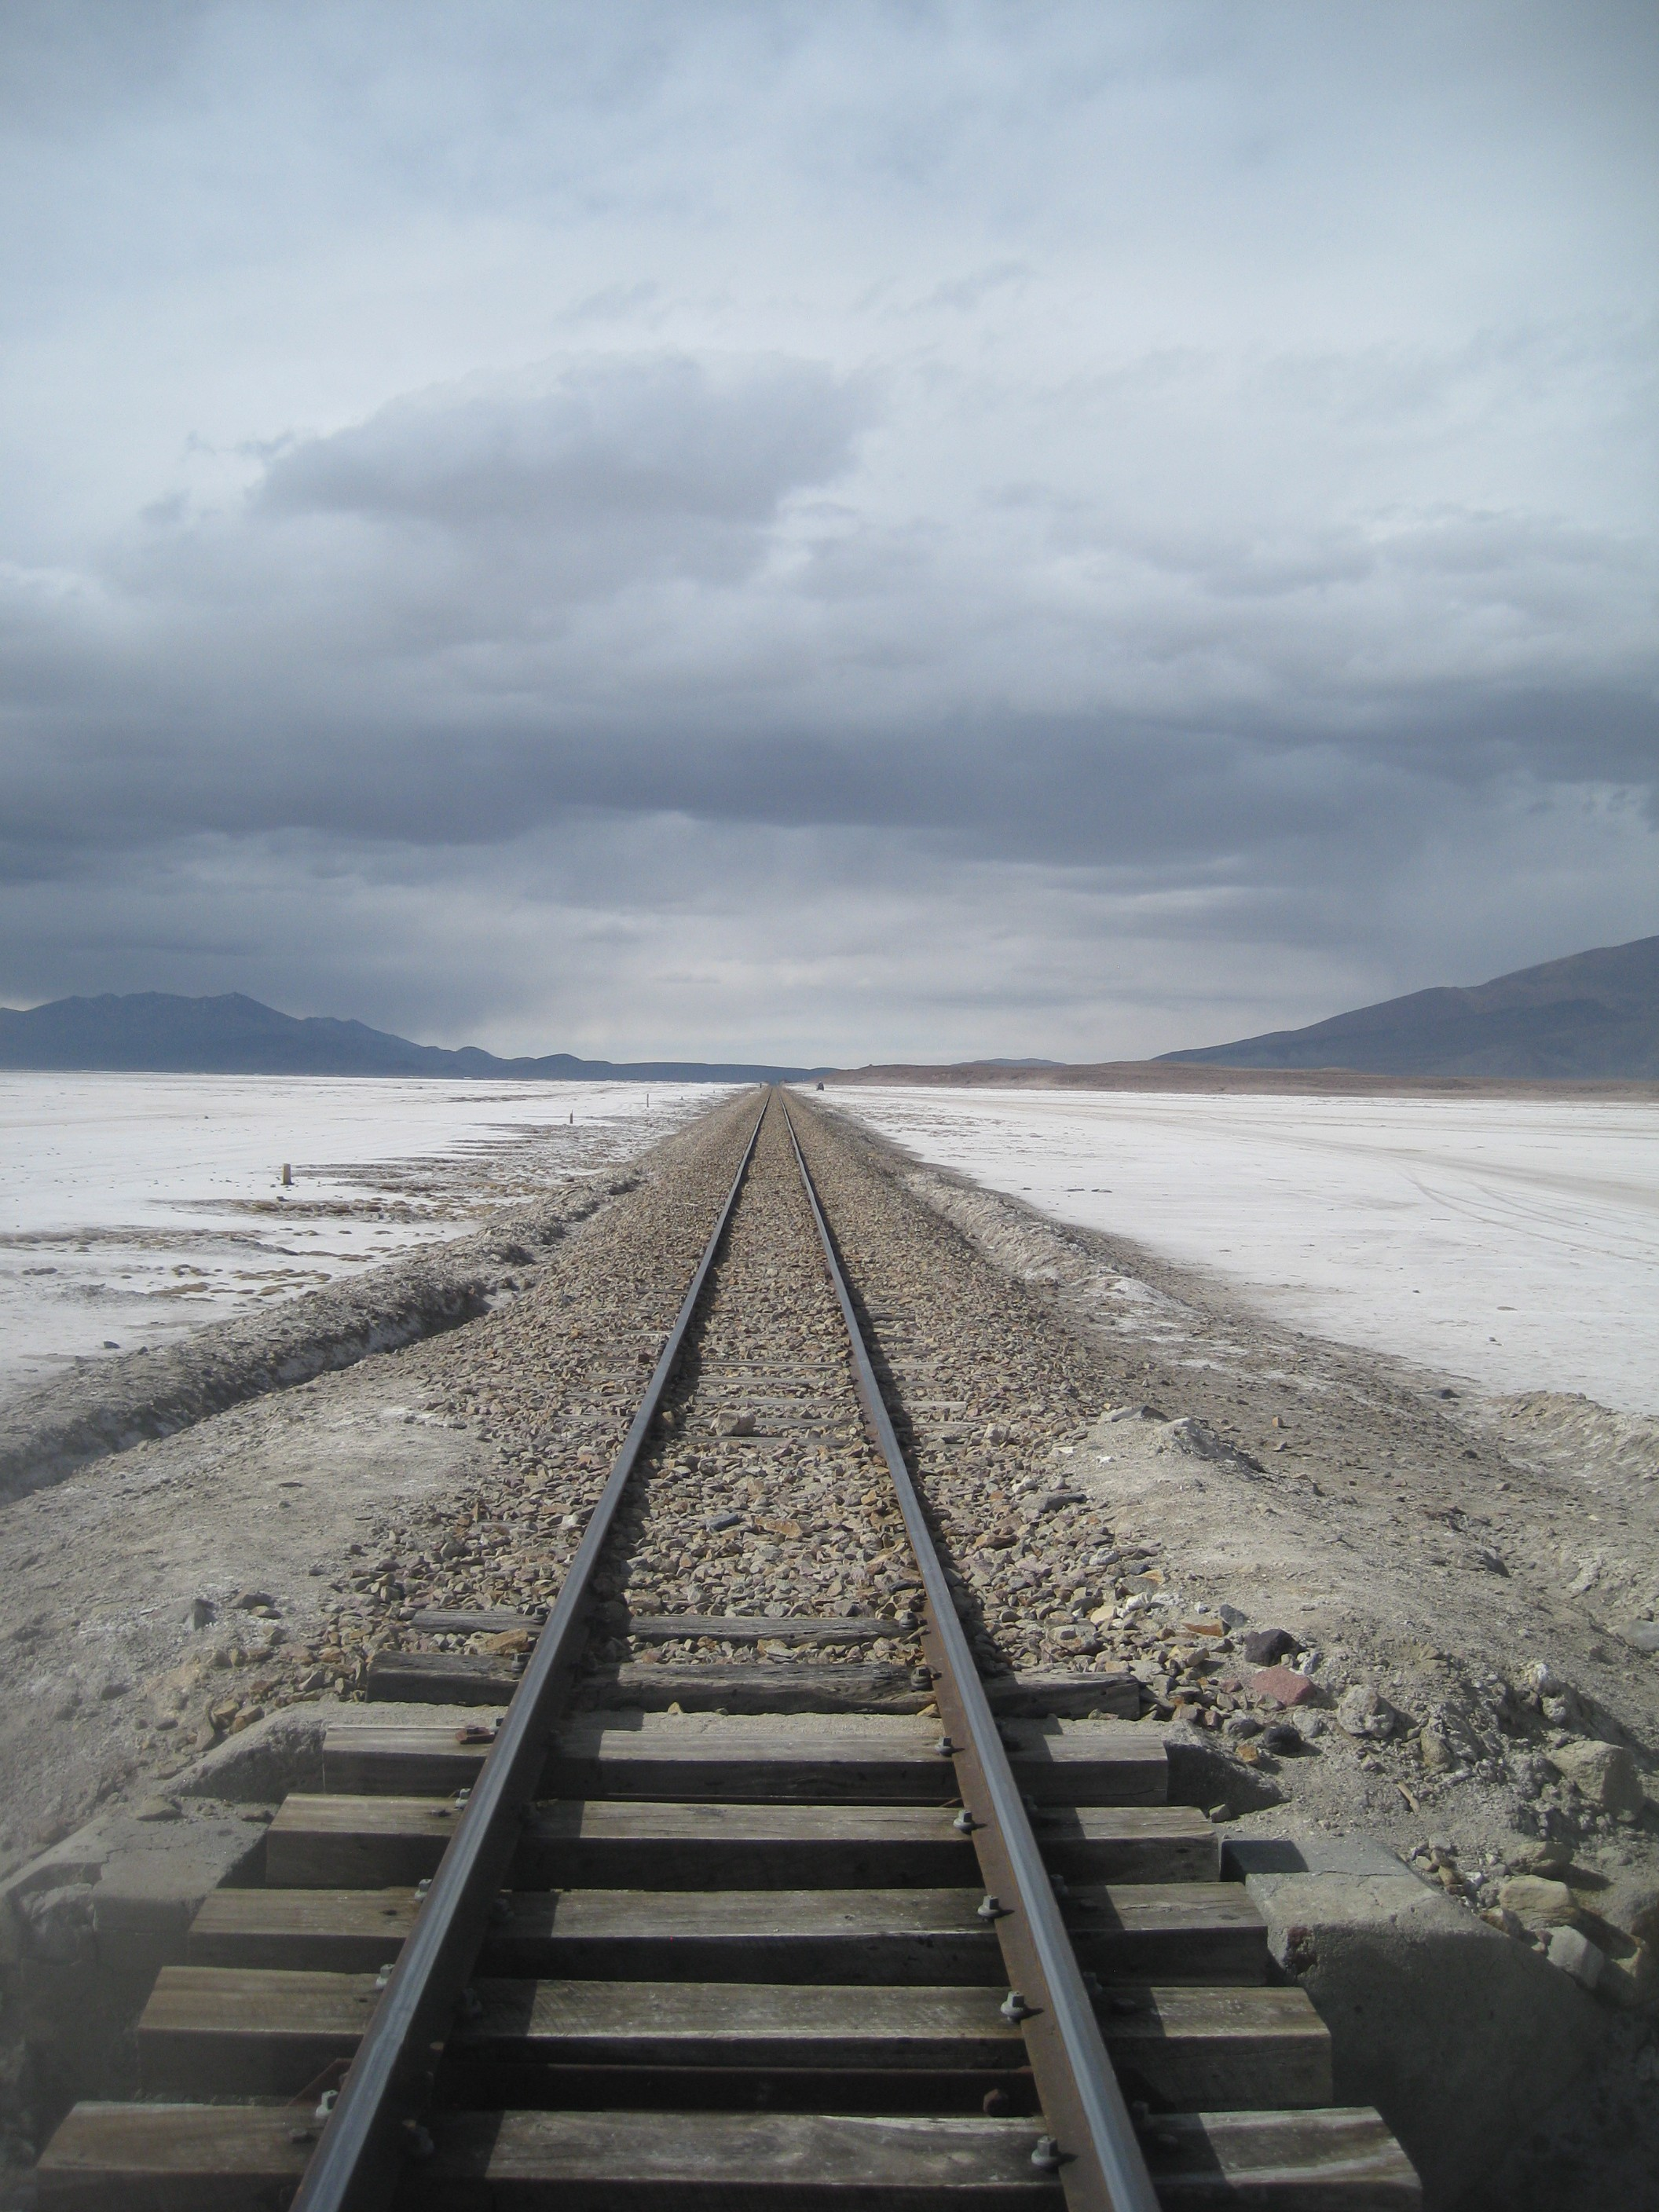 Train track on Bolivian Salt Flats. Todd's Travels Travel Blog - A little bit out of the ordinary.